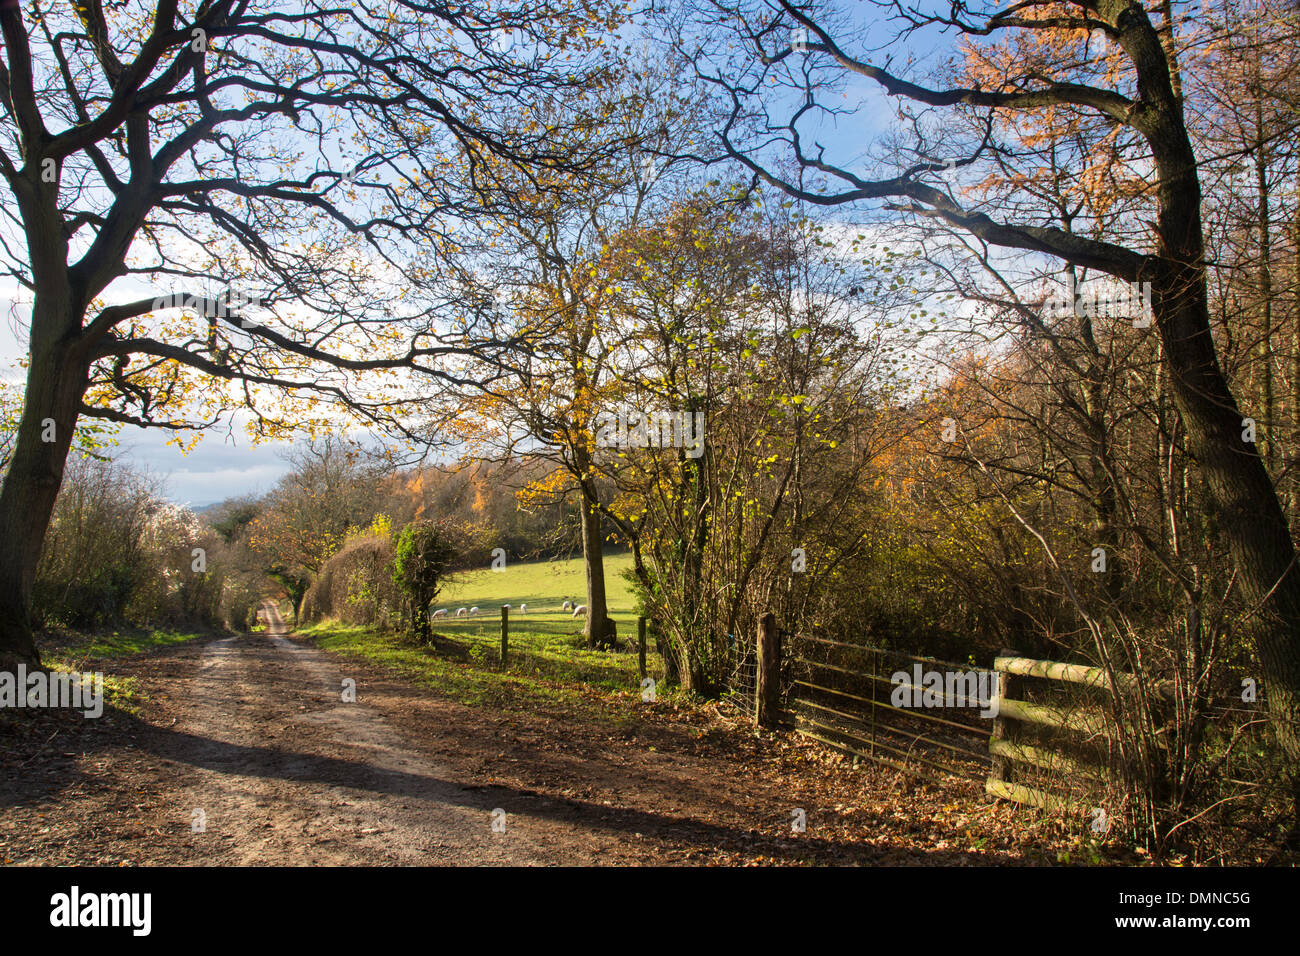 A Herefordshire country lane in autumn near Much Marcle, Herefordshire, England, UK Stock Photo